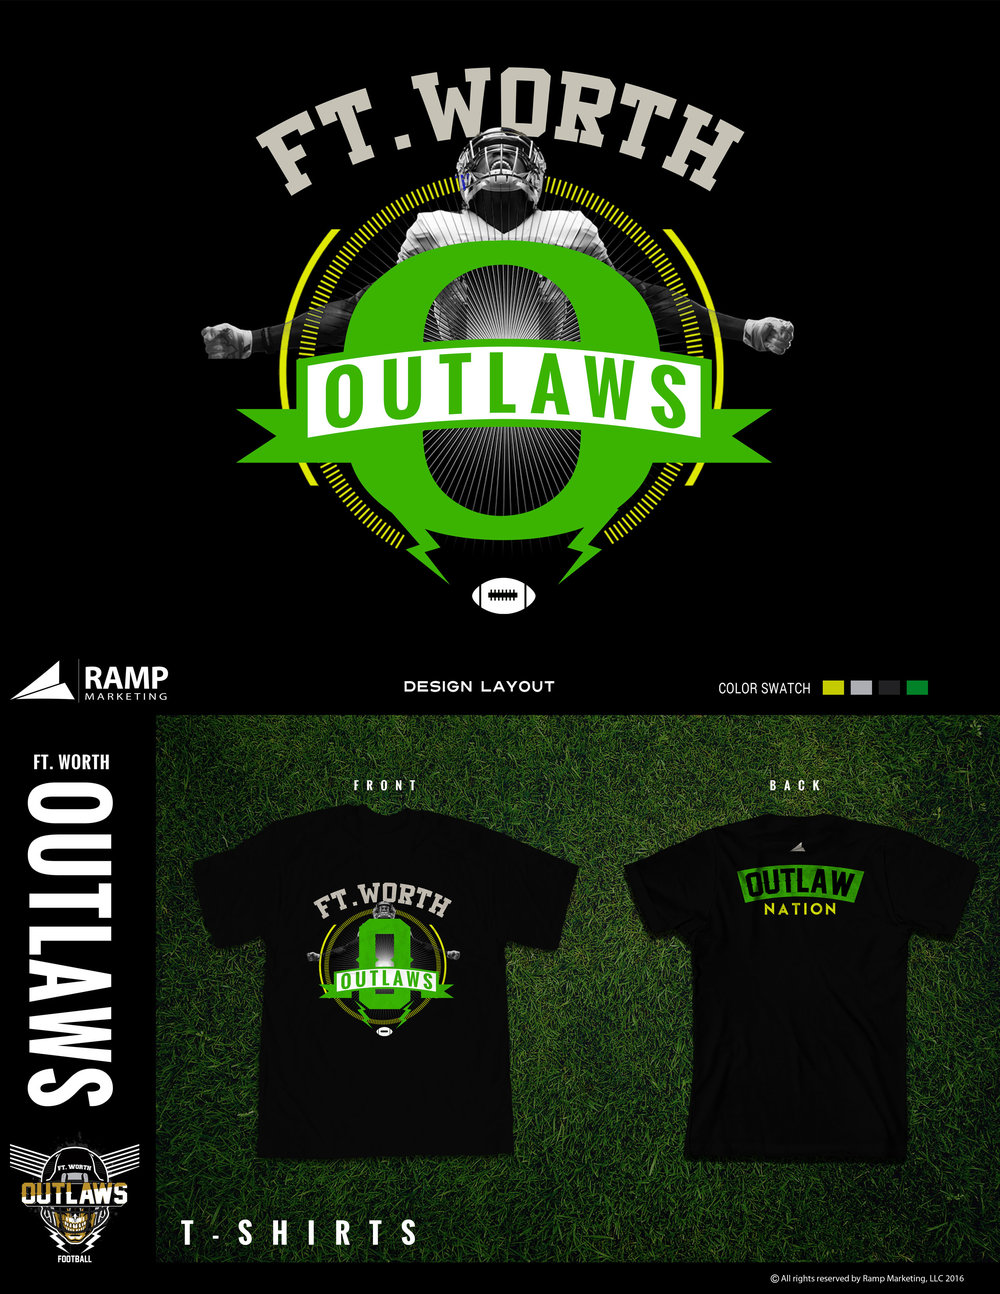 ramp marketing shirt(outlaws)2.jpg